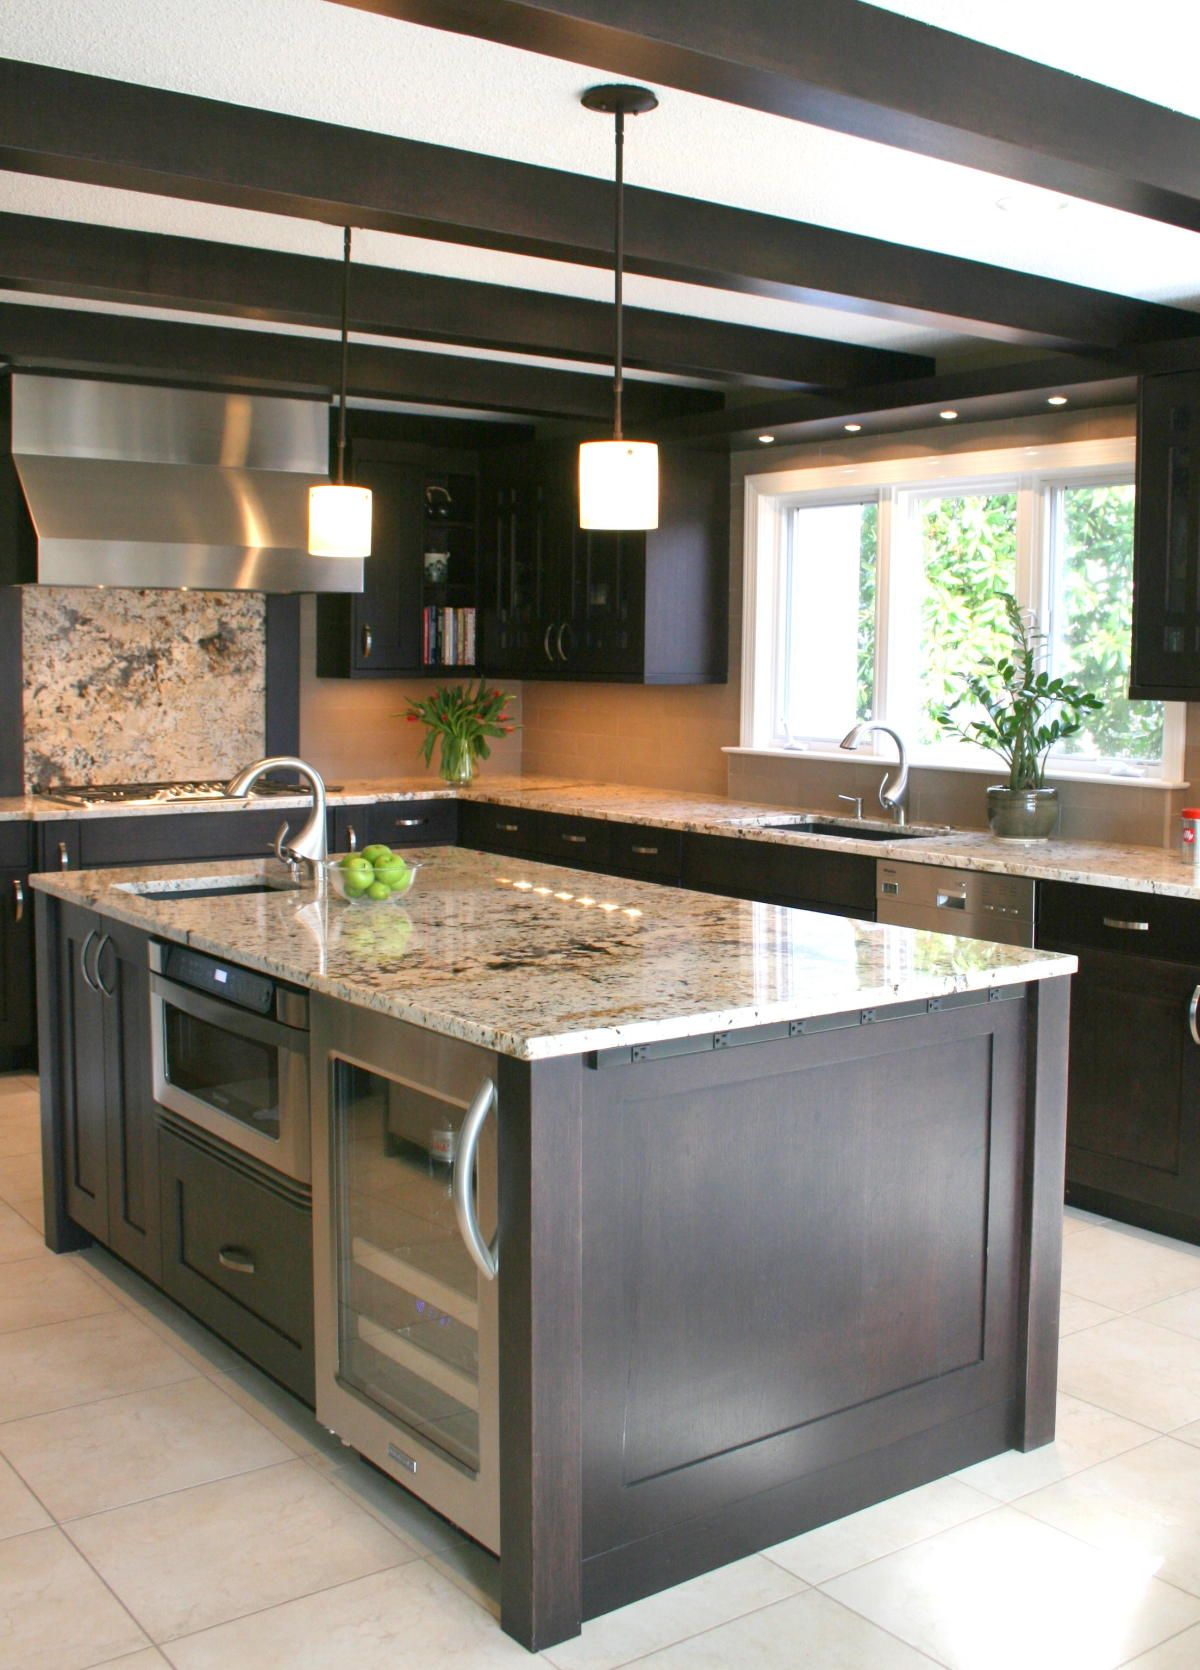 The working island appliances in the kitchen island for Small kitchen designs with island